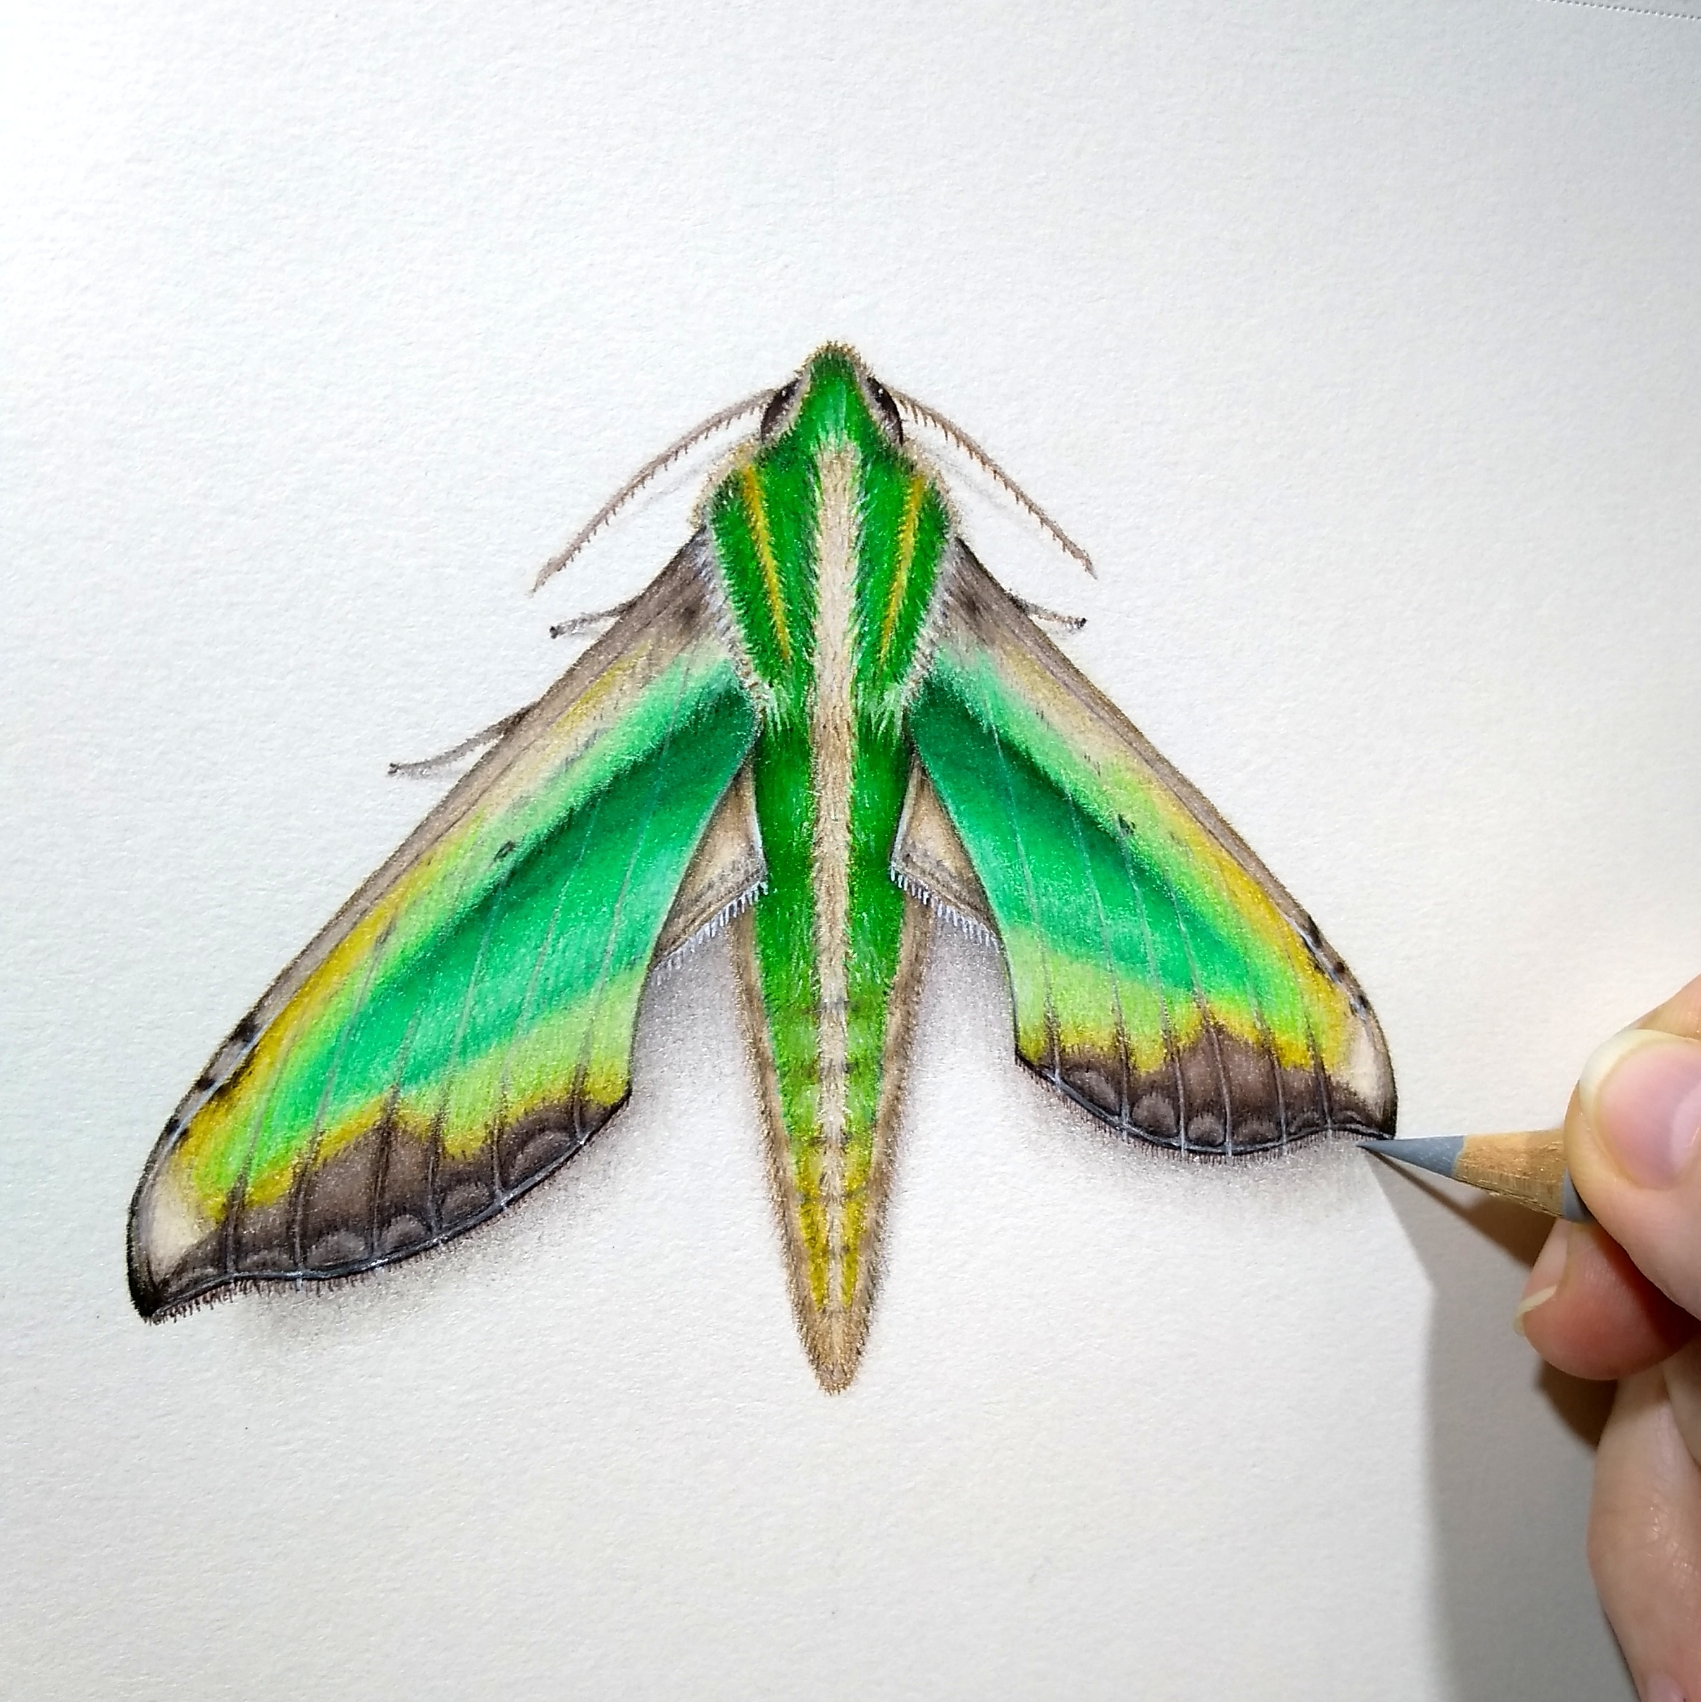 More WIP on that moth. Gotta love the greens!